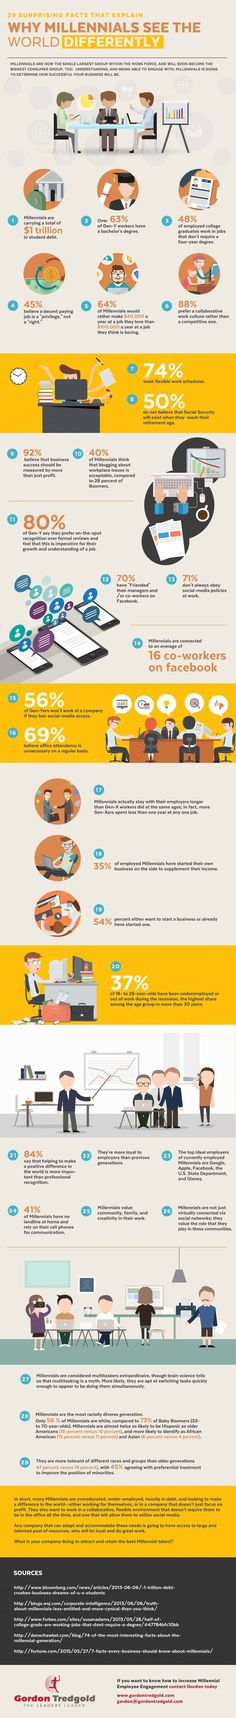 Infographic showing 29 interesting facts about Millennials that will help to understand, engage, and motivate them.